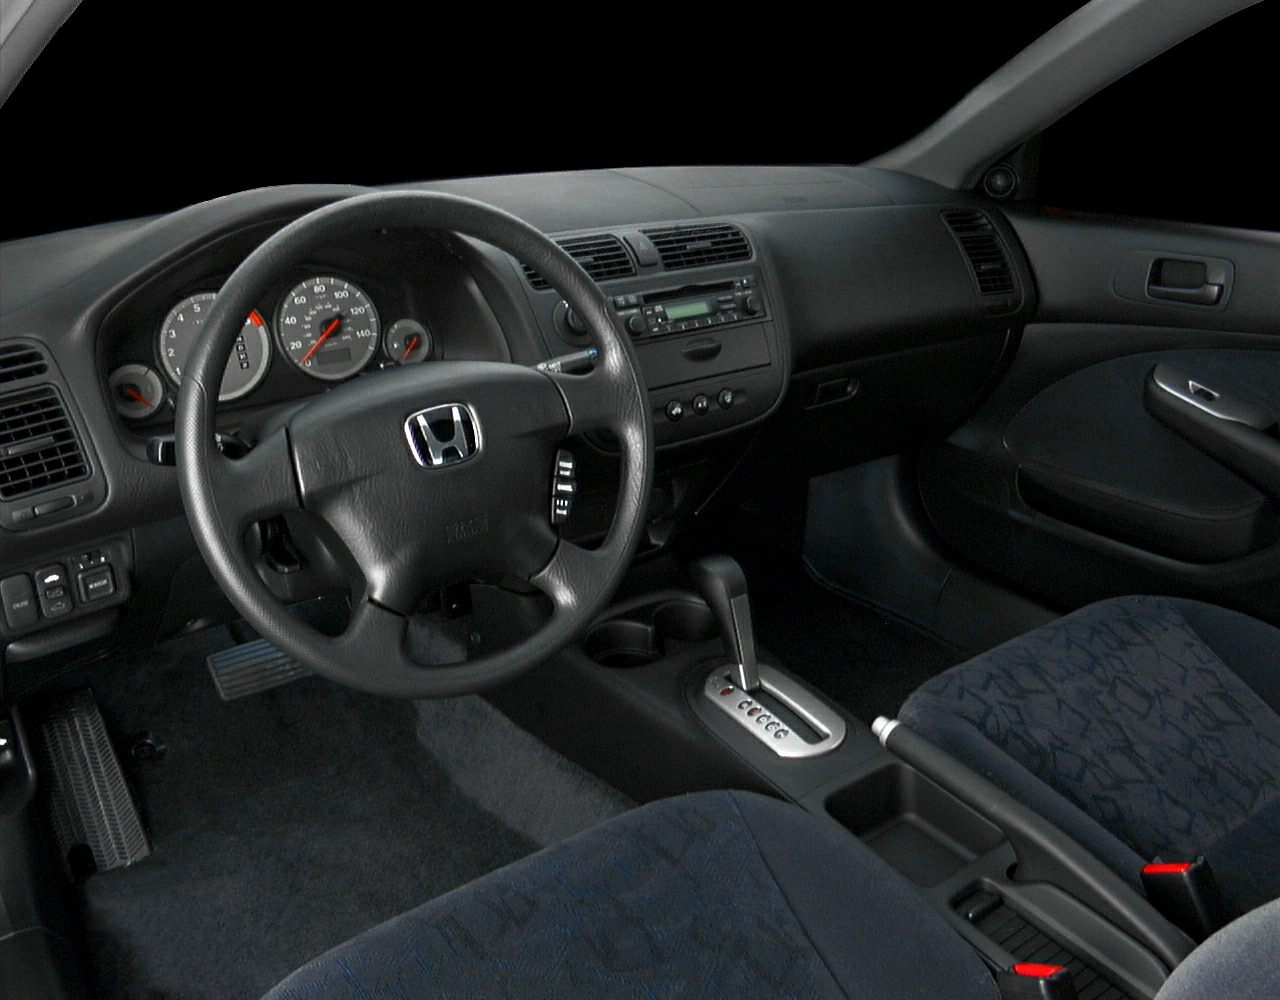 Used 2001 Honda Civic Ex Inventory Vehicle Details At Tallee Ford Your Alabama Dealer